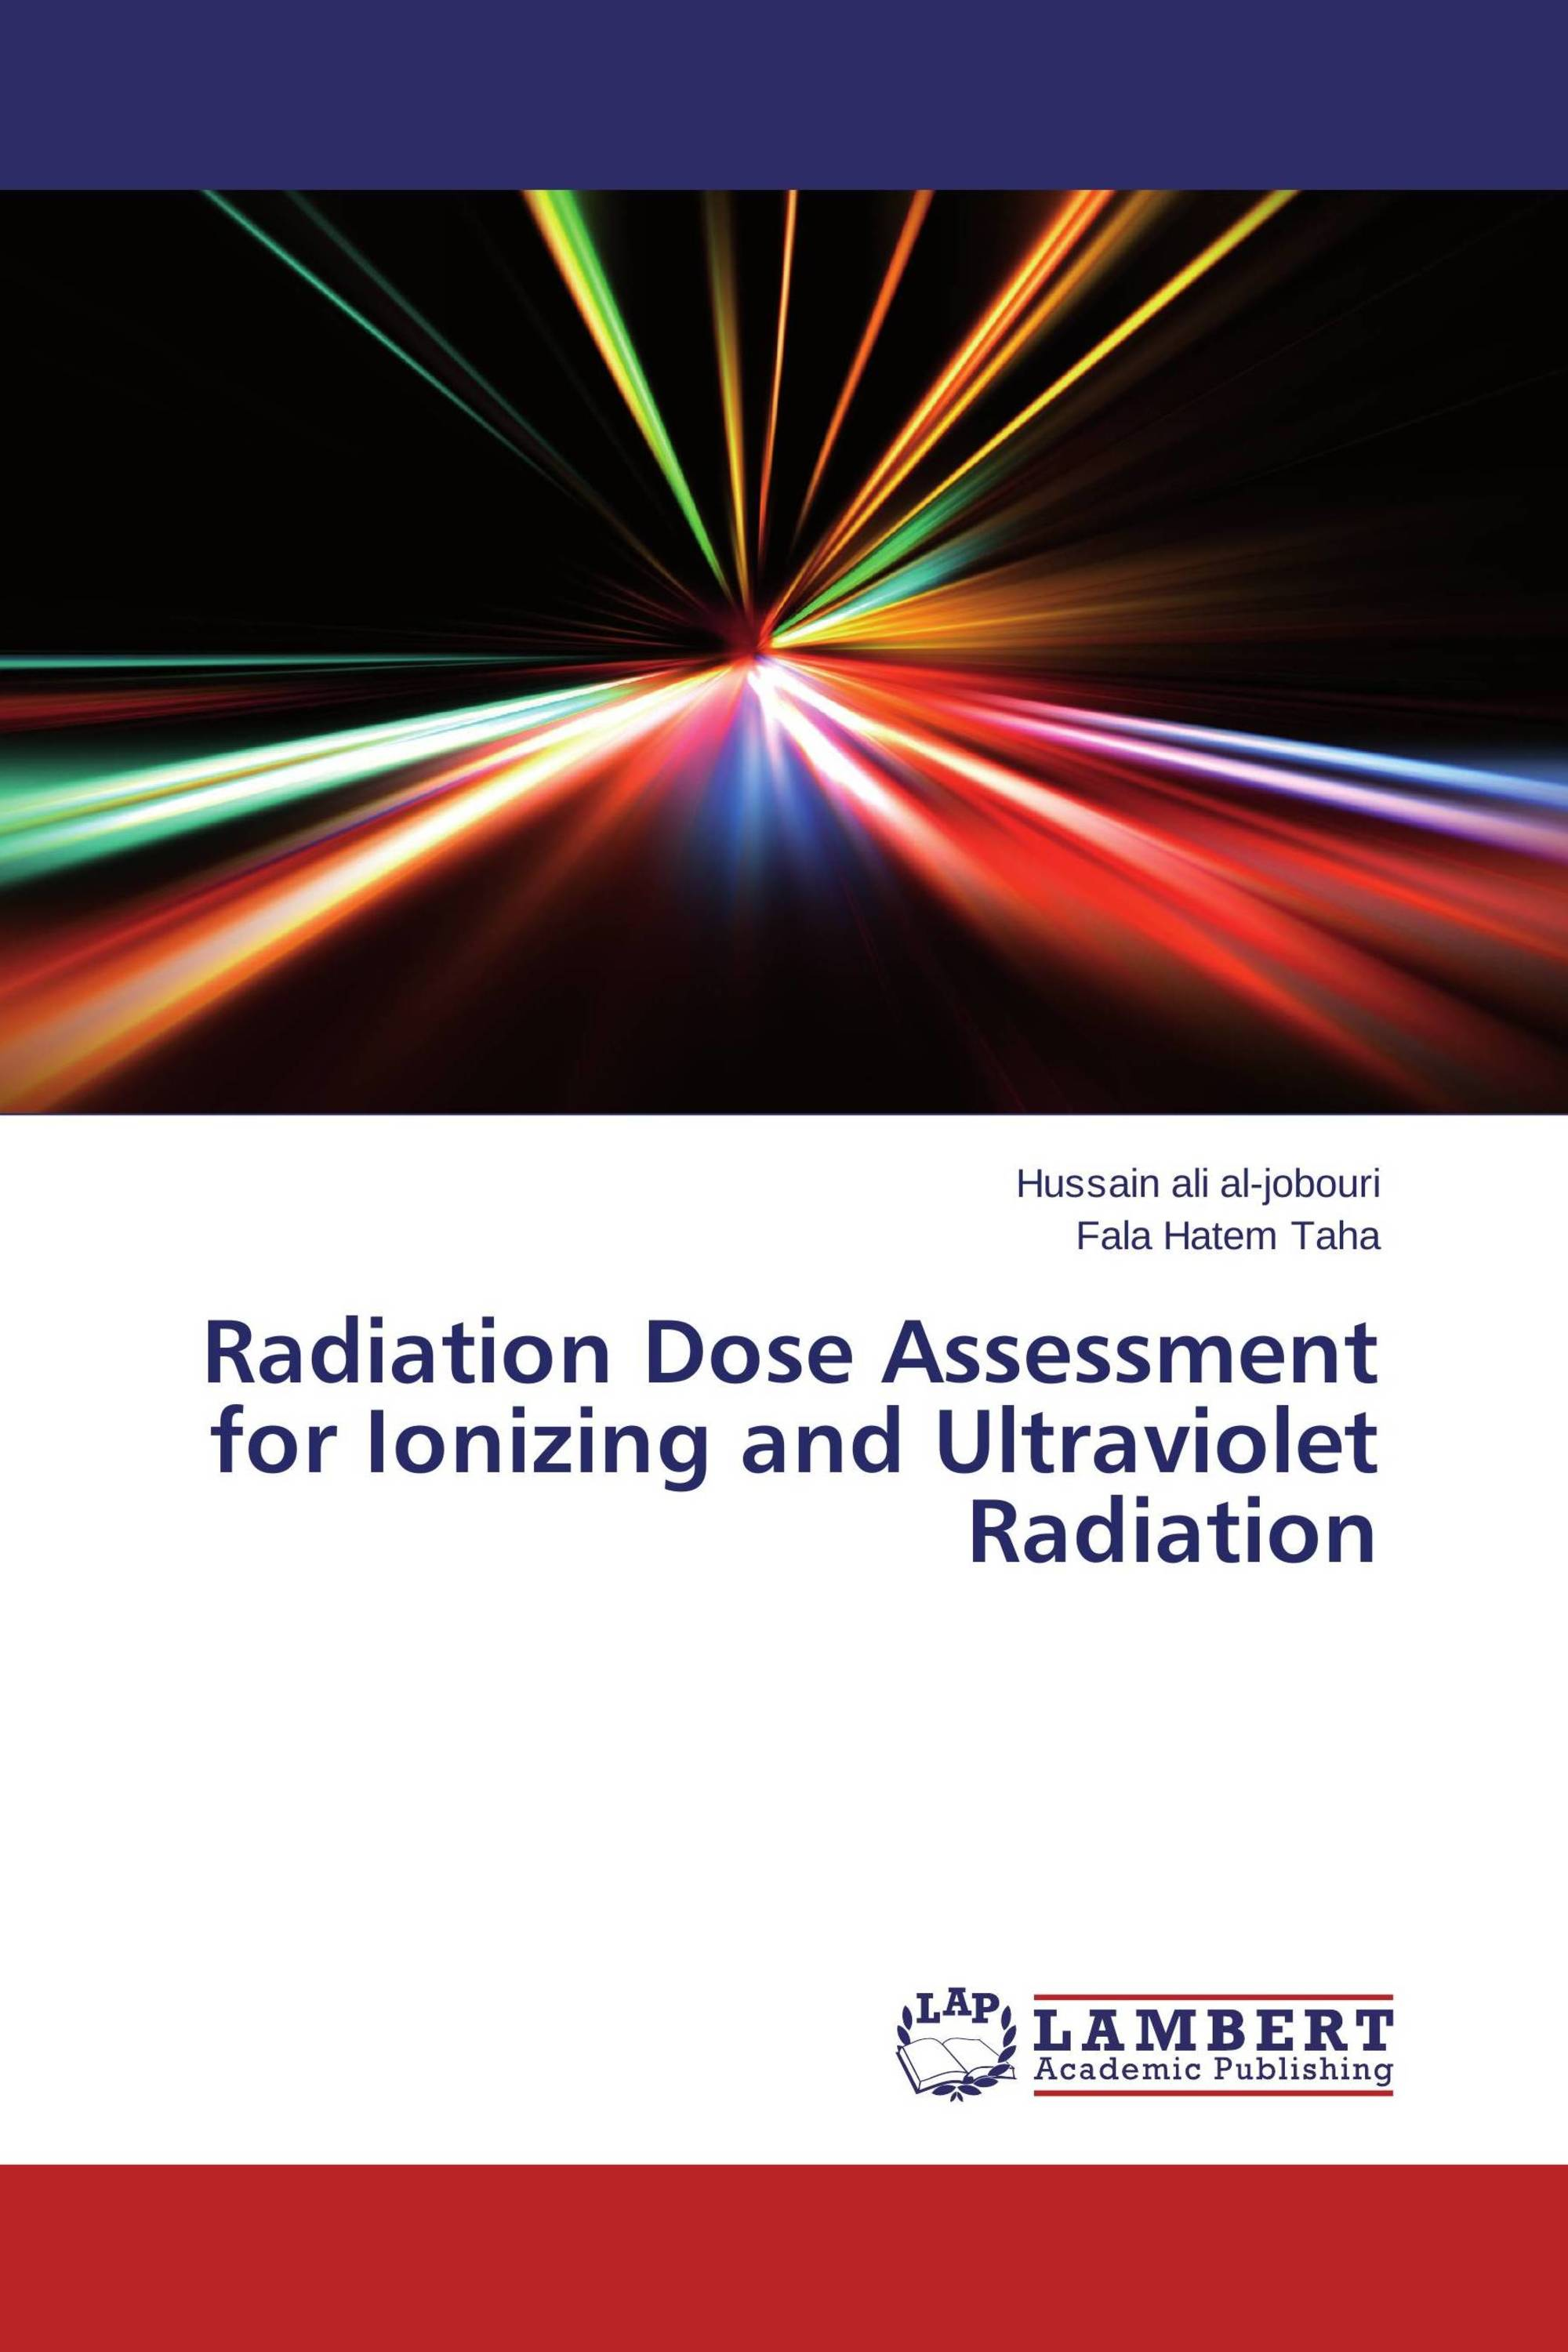 Radiation Dose Assessment for Ionizing and Ultraviolet Radiation